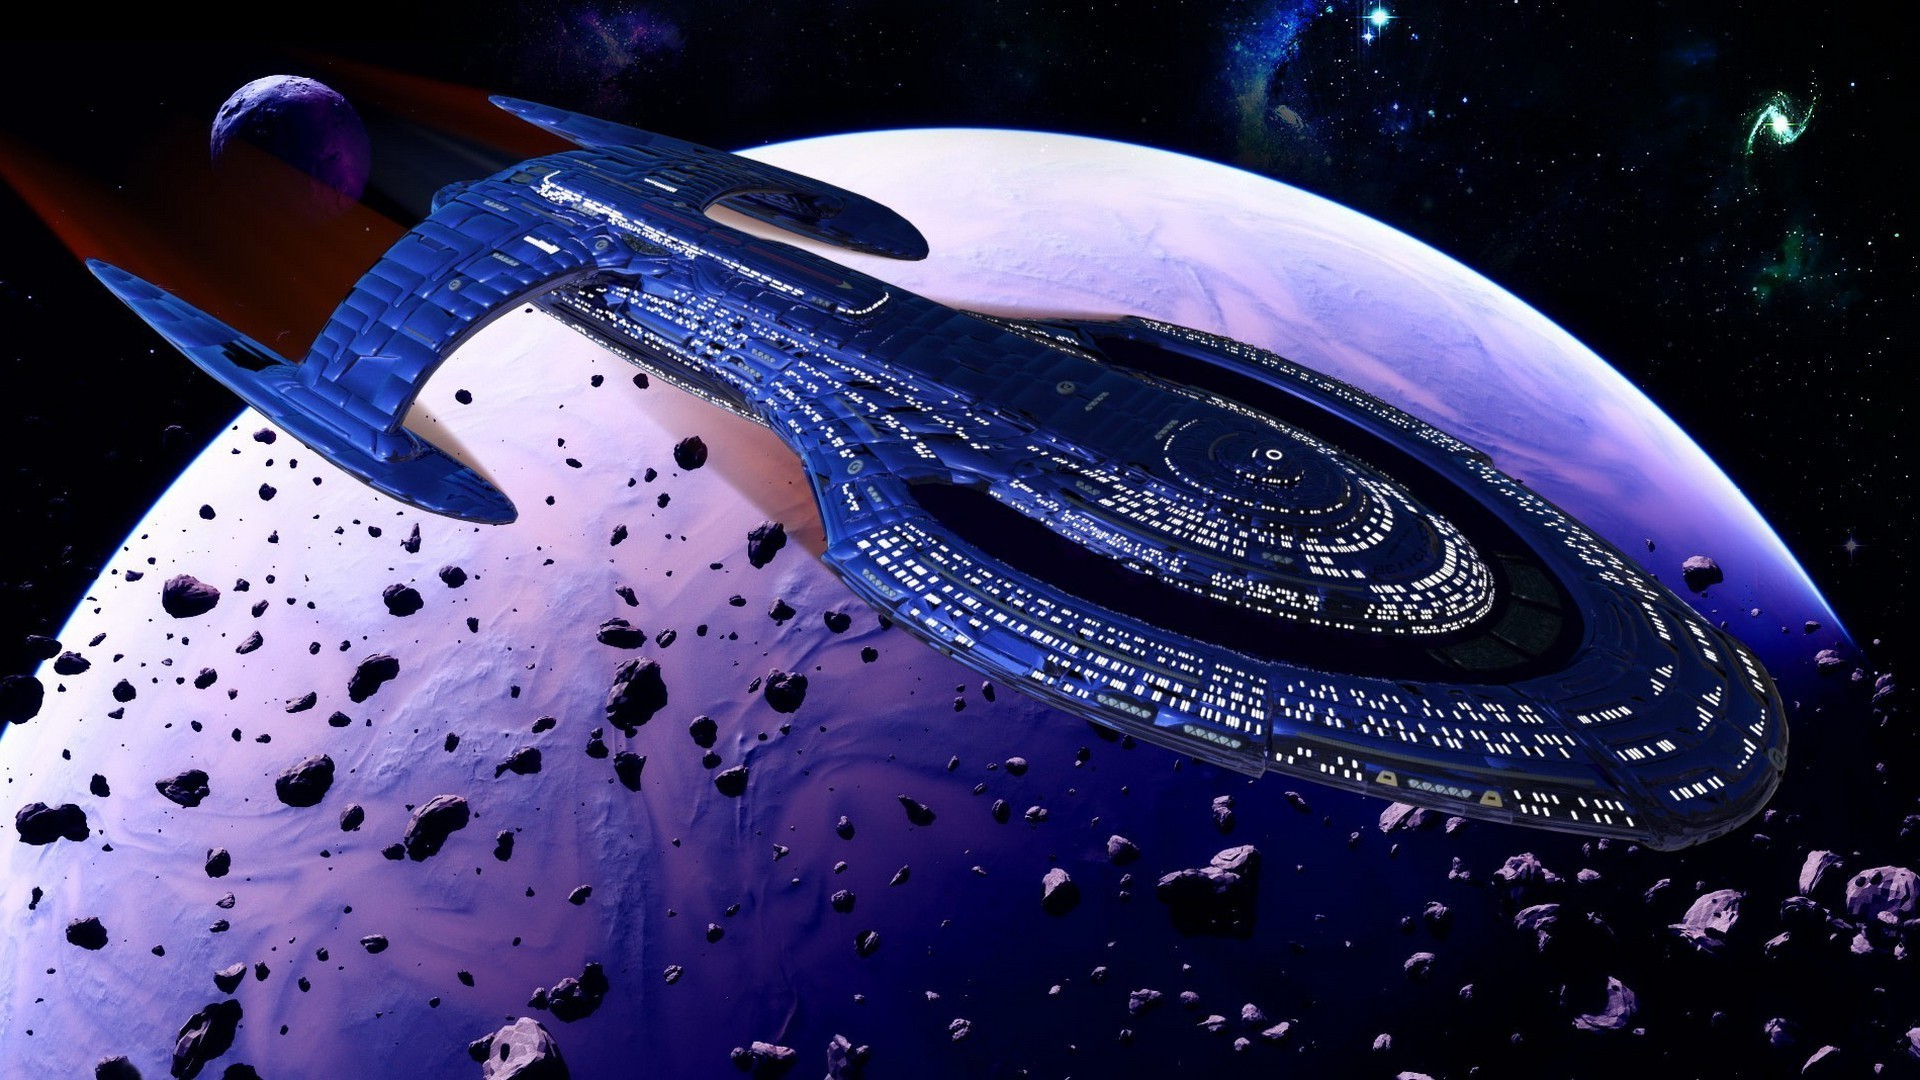 Star Trek World Wallpapers wallgemFree Download k Ultra